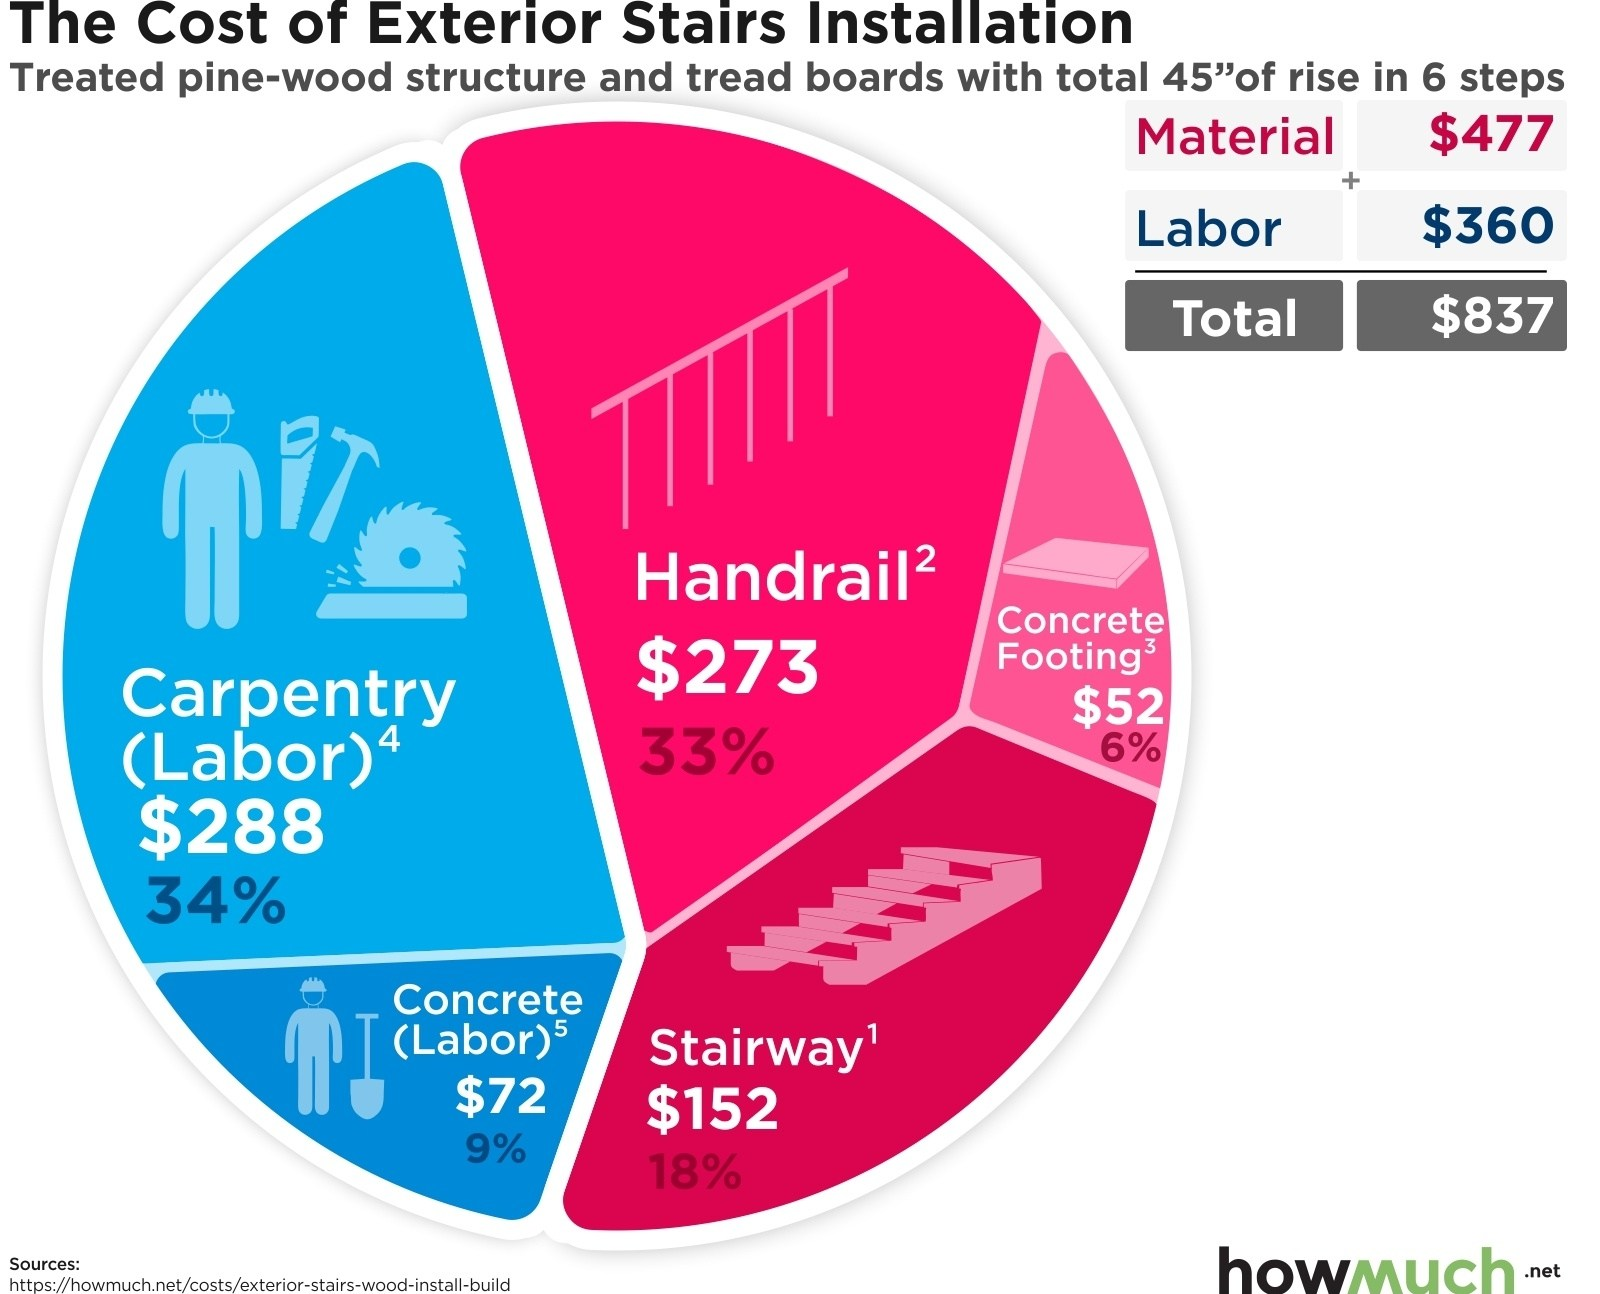 How Much Does It Cost To Install Exterior Stairs | Precast Basement Stairs Cost | Spiral Staircase | Walkout Basement Entrance | Concrete Products | Finished Basement | Bilco Doors